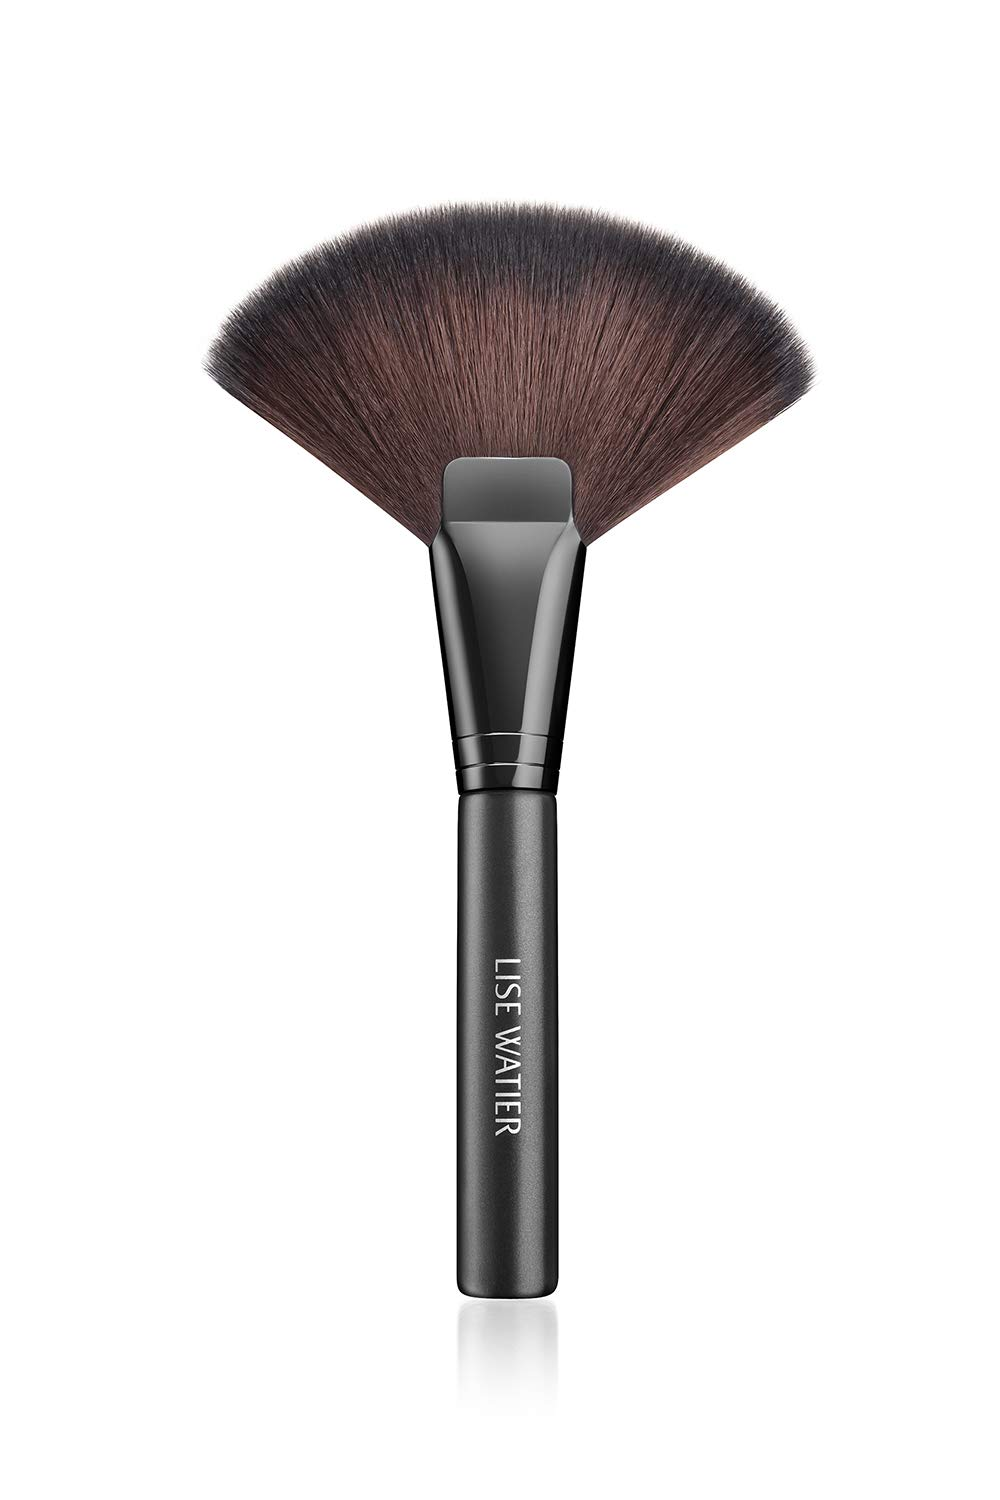 Lise Watier Multifunction Powder Brush, 1 count